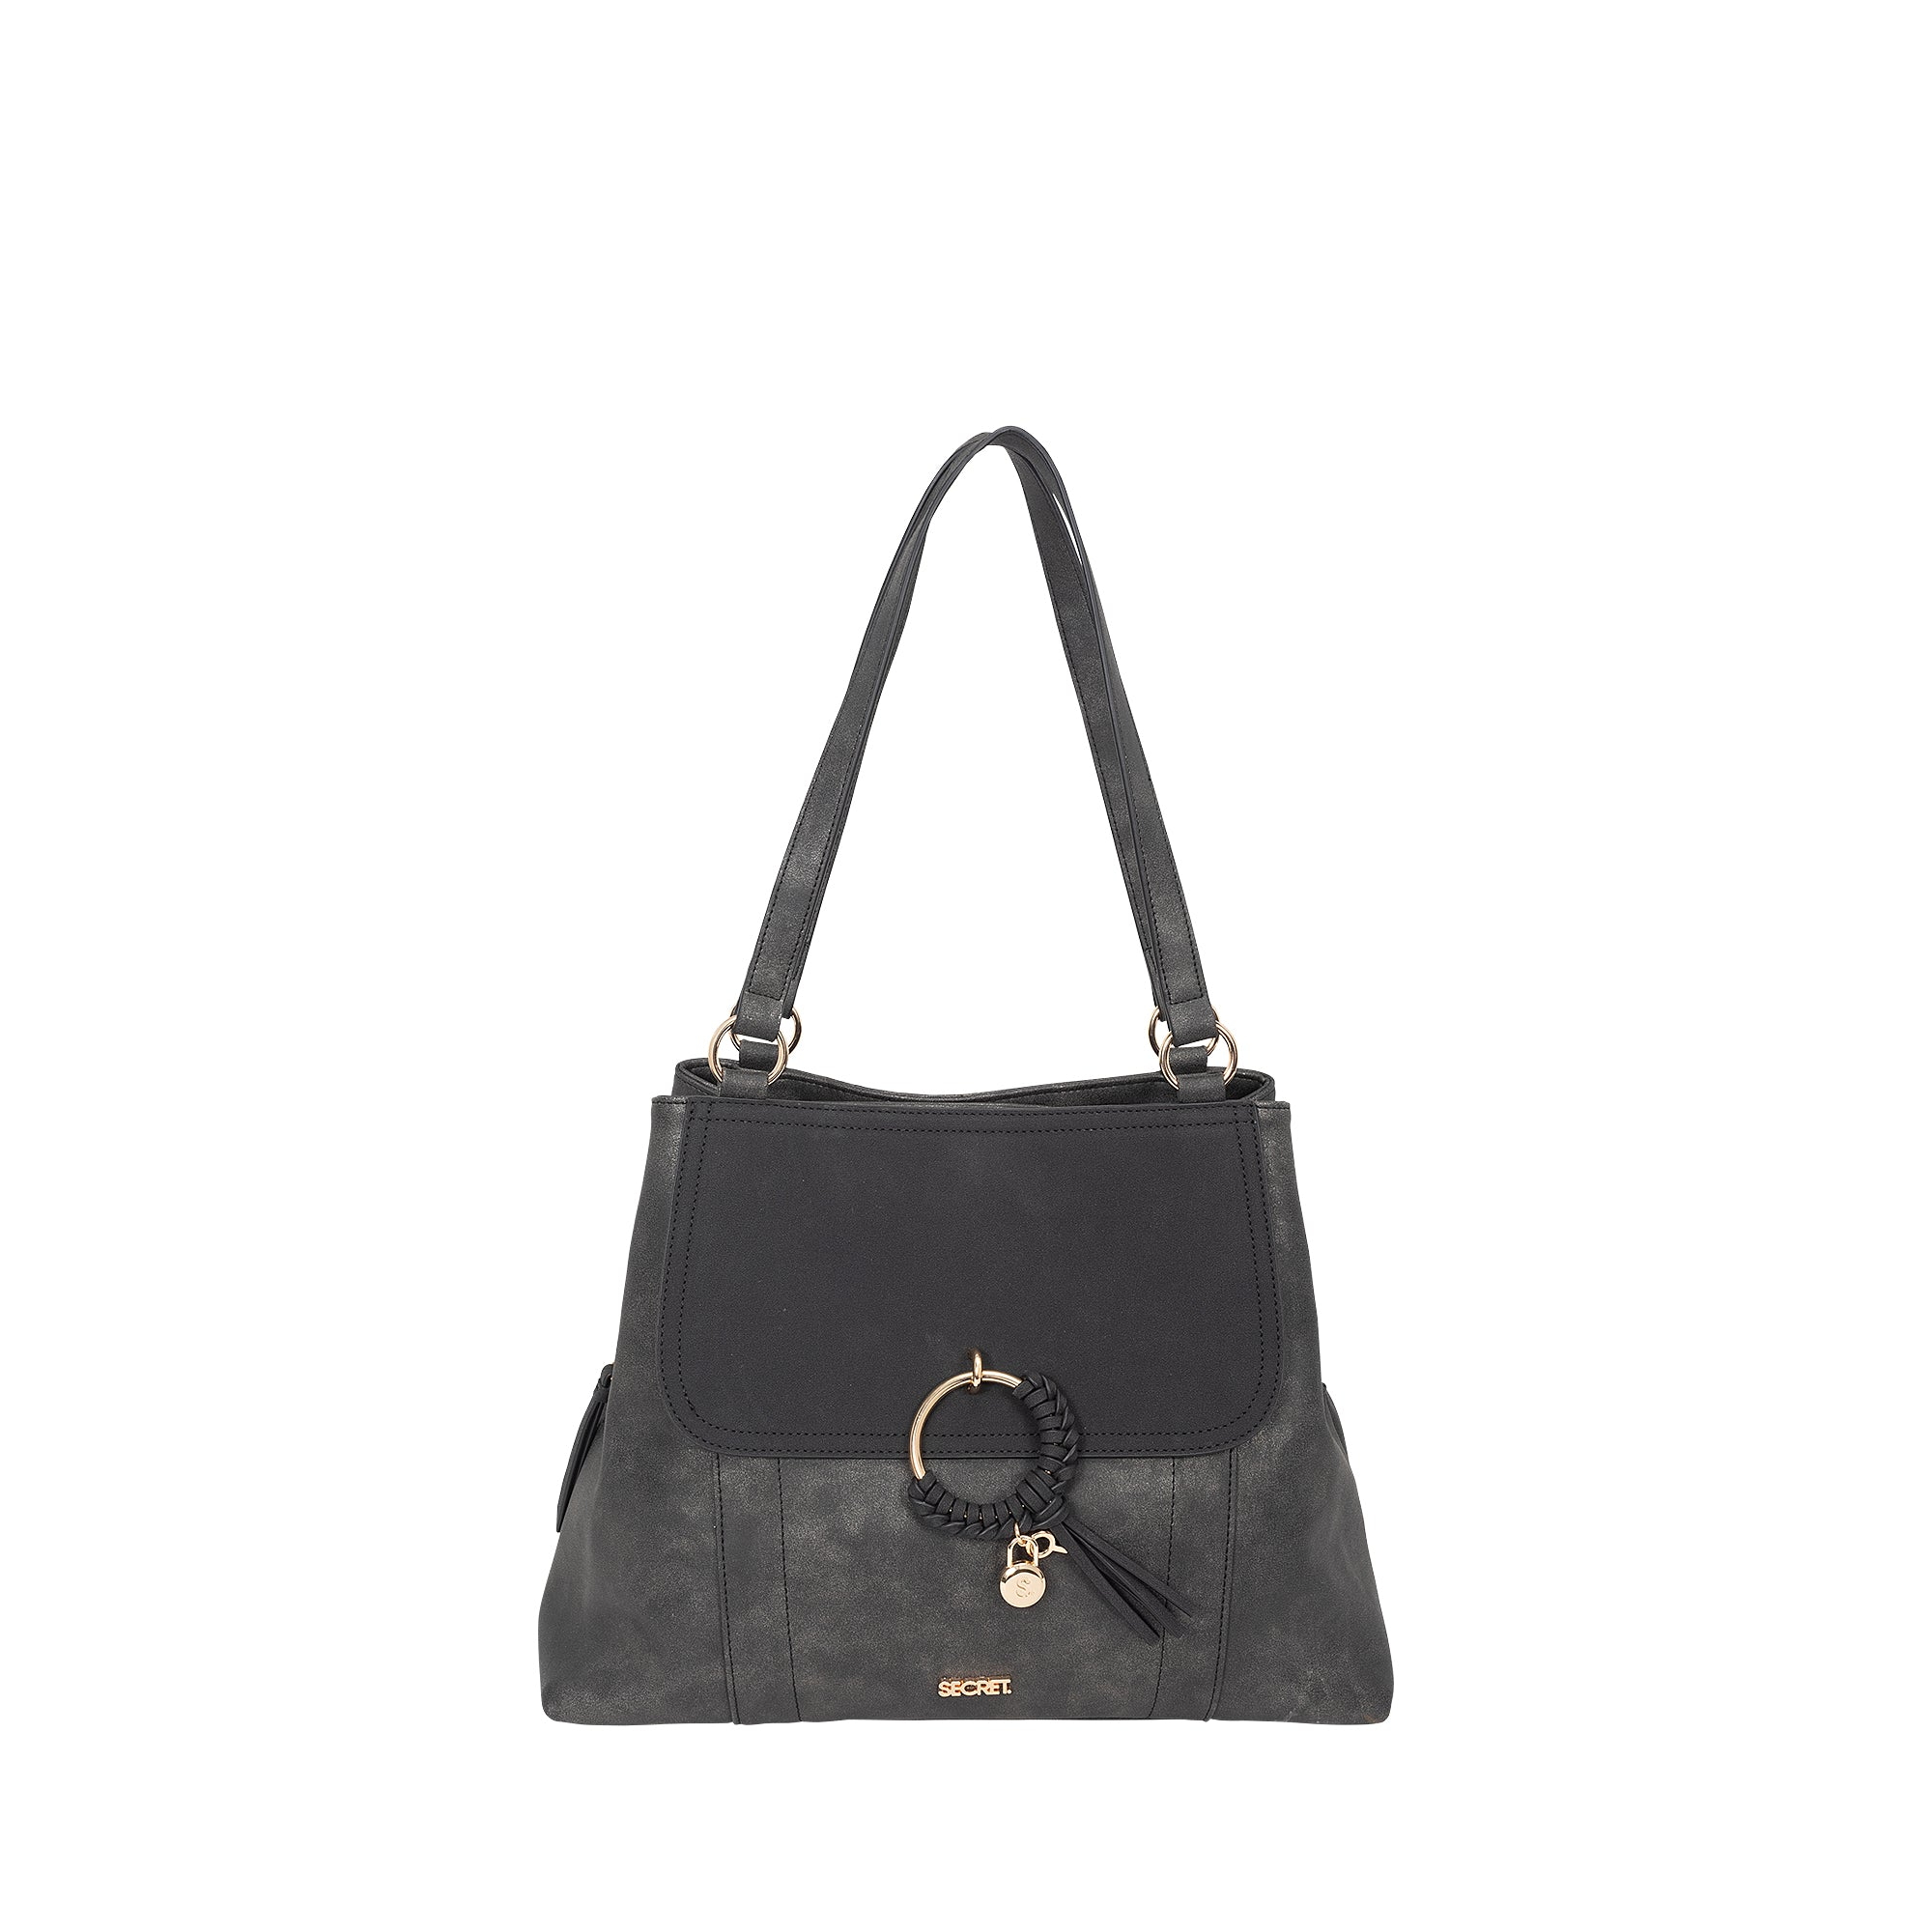 Cartera Japon Shoulder bag Black L 3DV